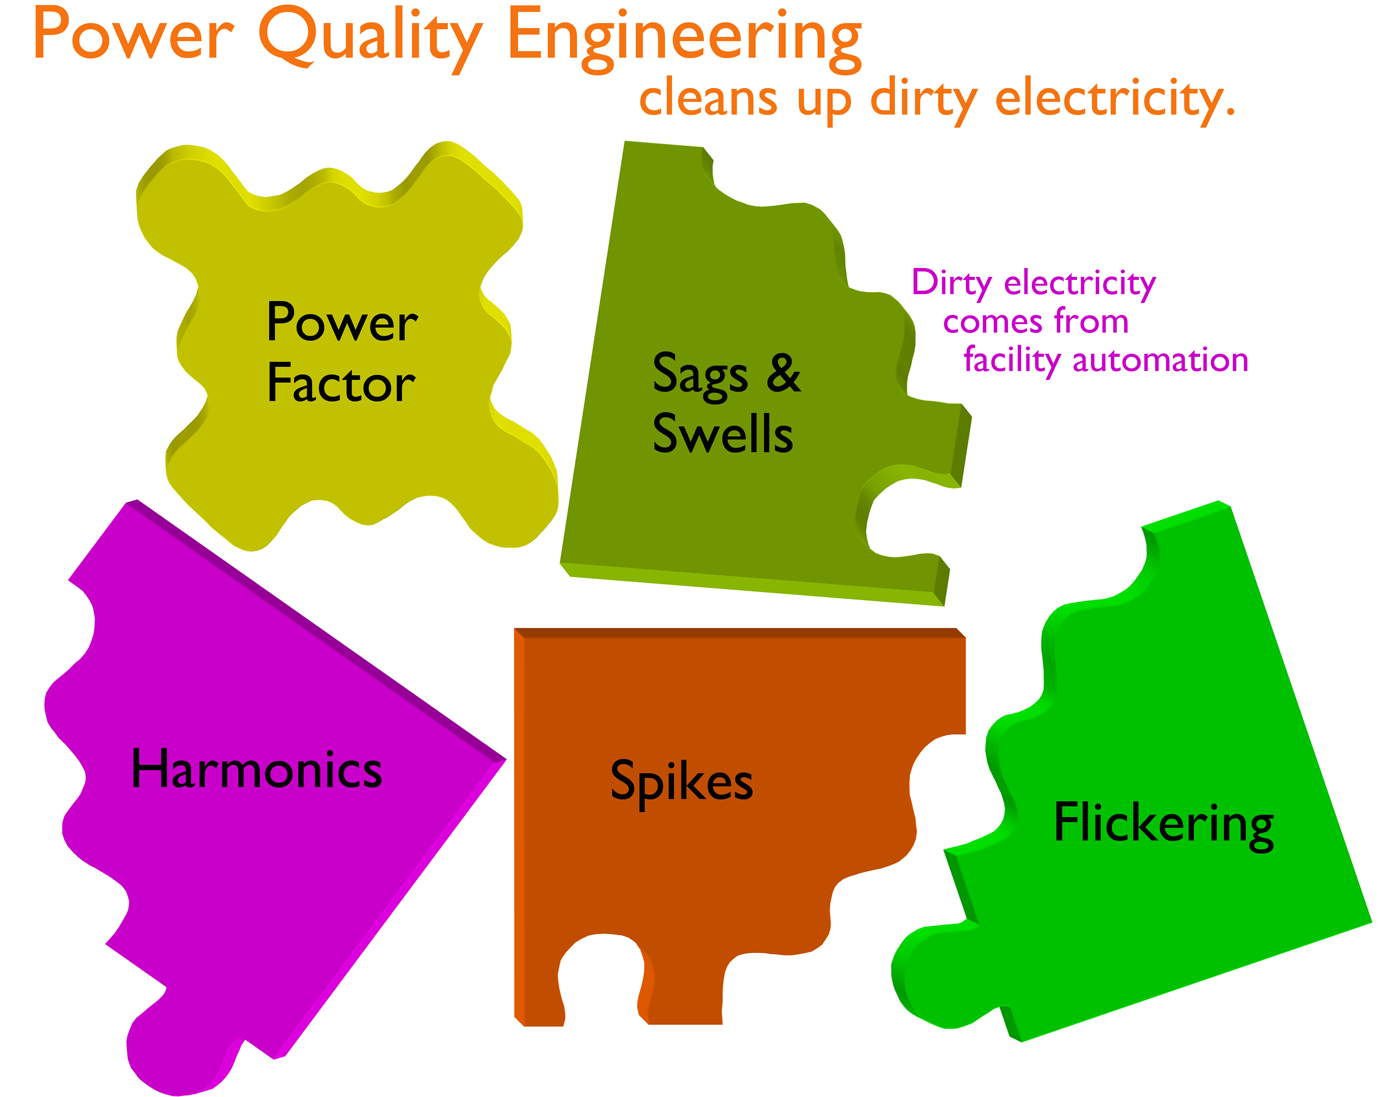 PowerQualityEngineering